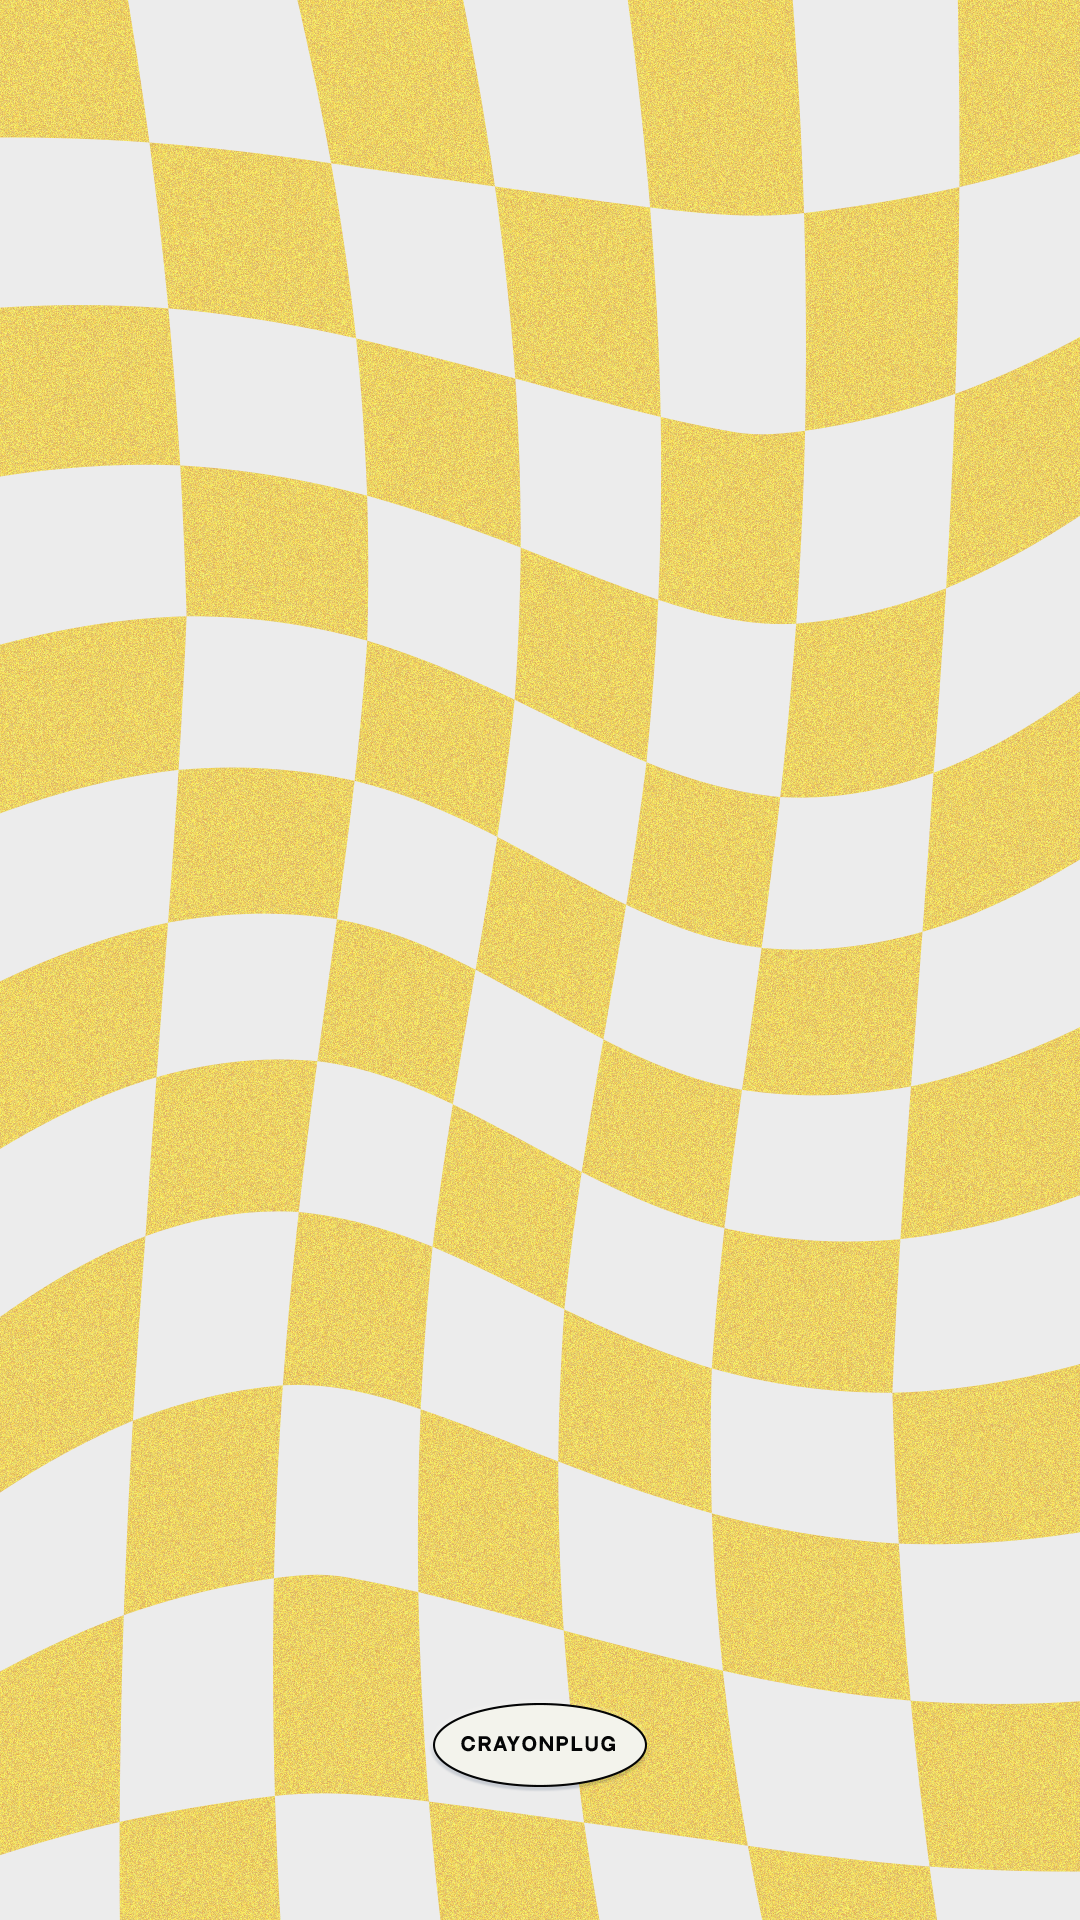 New Yolk Checker Wallpaper for iPhone/ Android by Crayonplug Studio